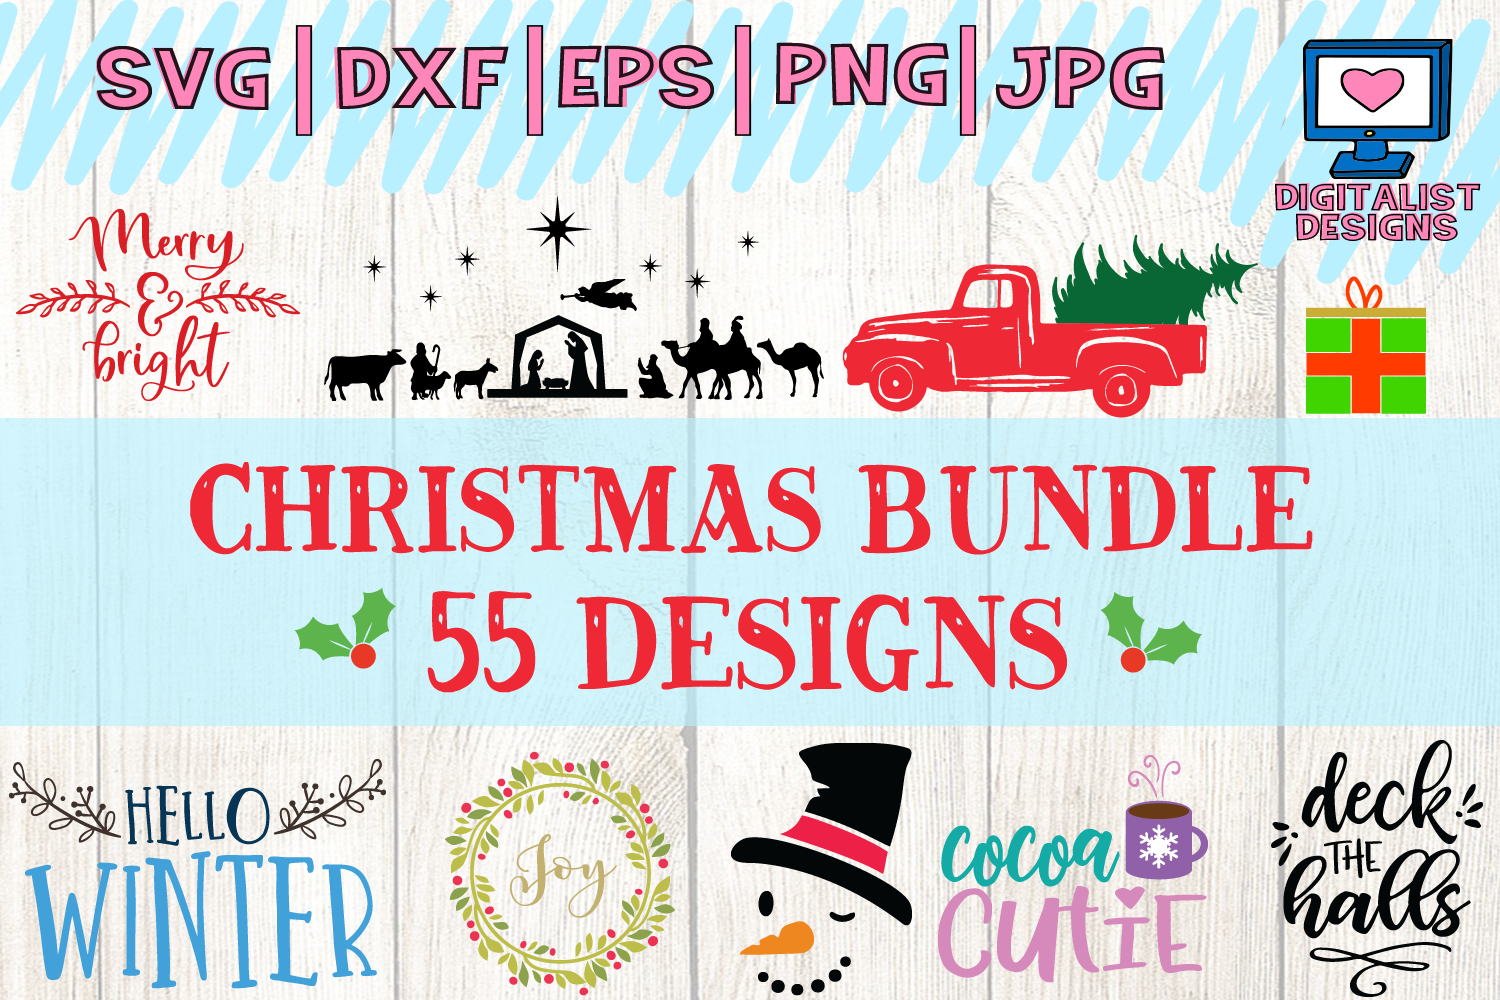 Download Free 55 Christmas Quotes Designs Bundle Graphic By Digitalistdesigns Creative Fabrica for Cricut Explore, Silhouette and other cutting machines.